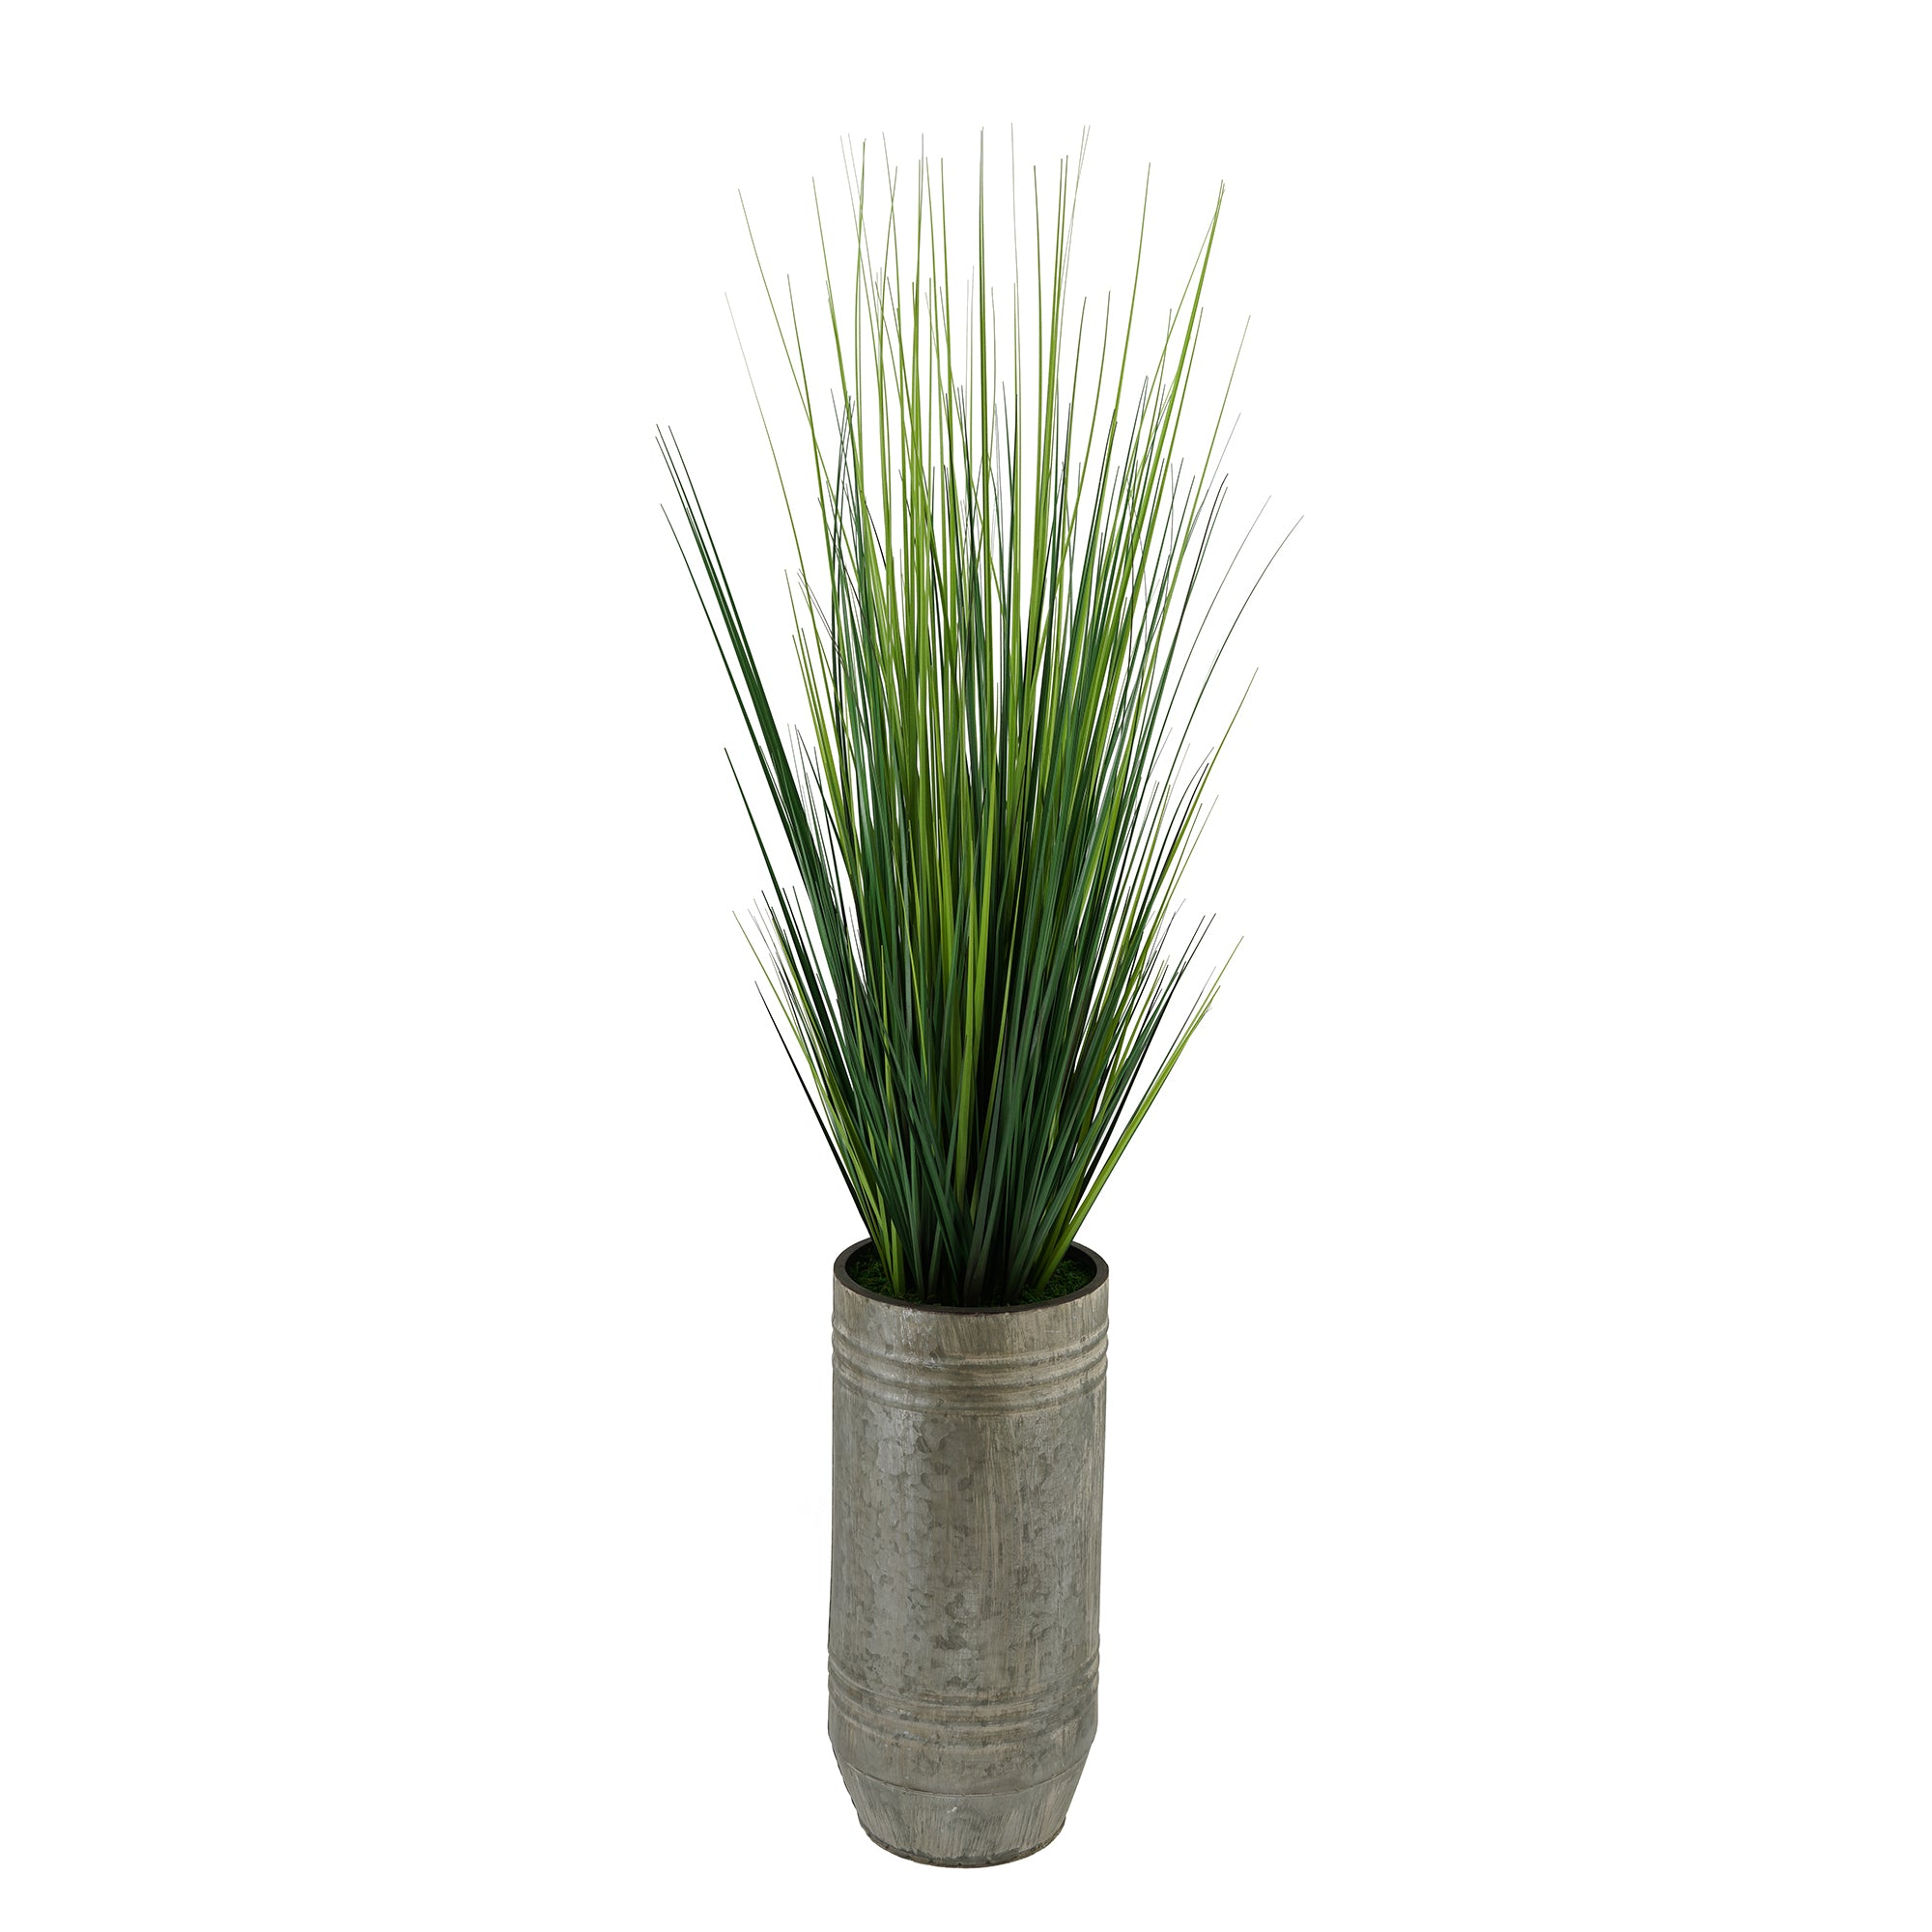 Artificial Reed Grass in Smooth Industrial Metal Planter